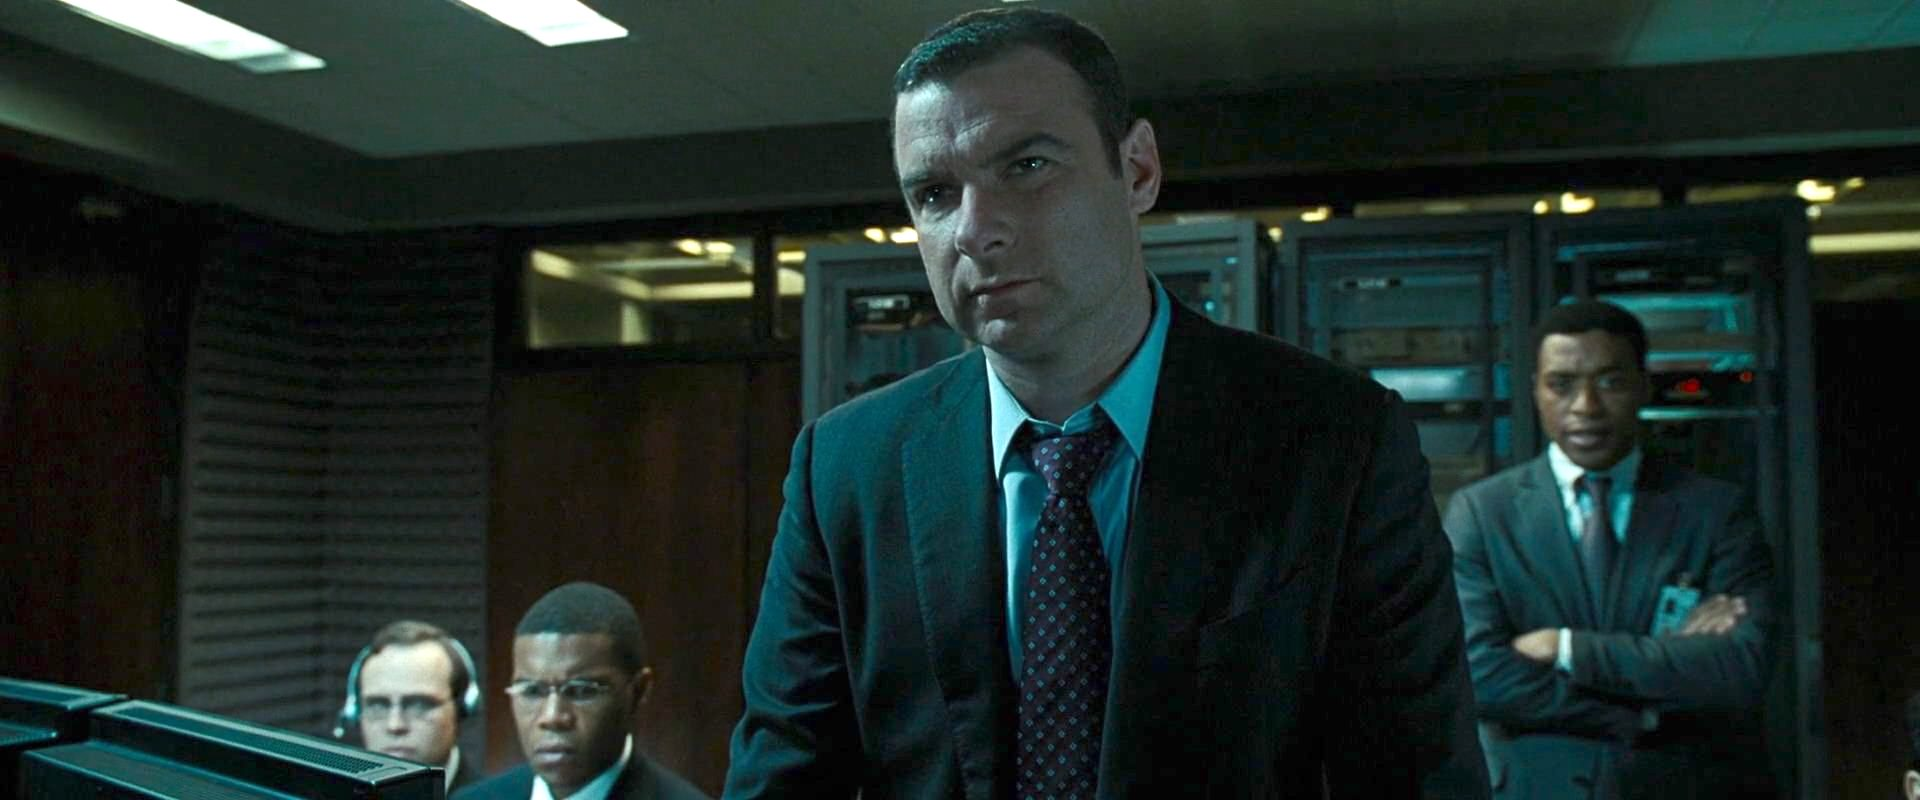 Liev Schreiber, Chiwetel Ejiofor, Kevin O'Donnell, and Gaius Charles in Salt (2010)